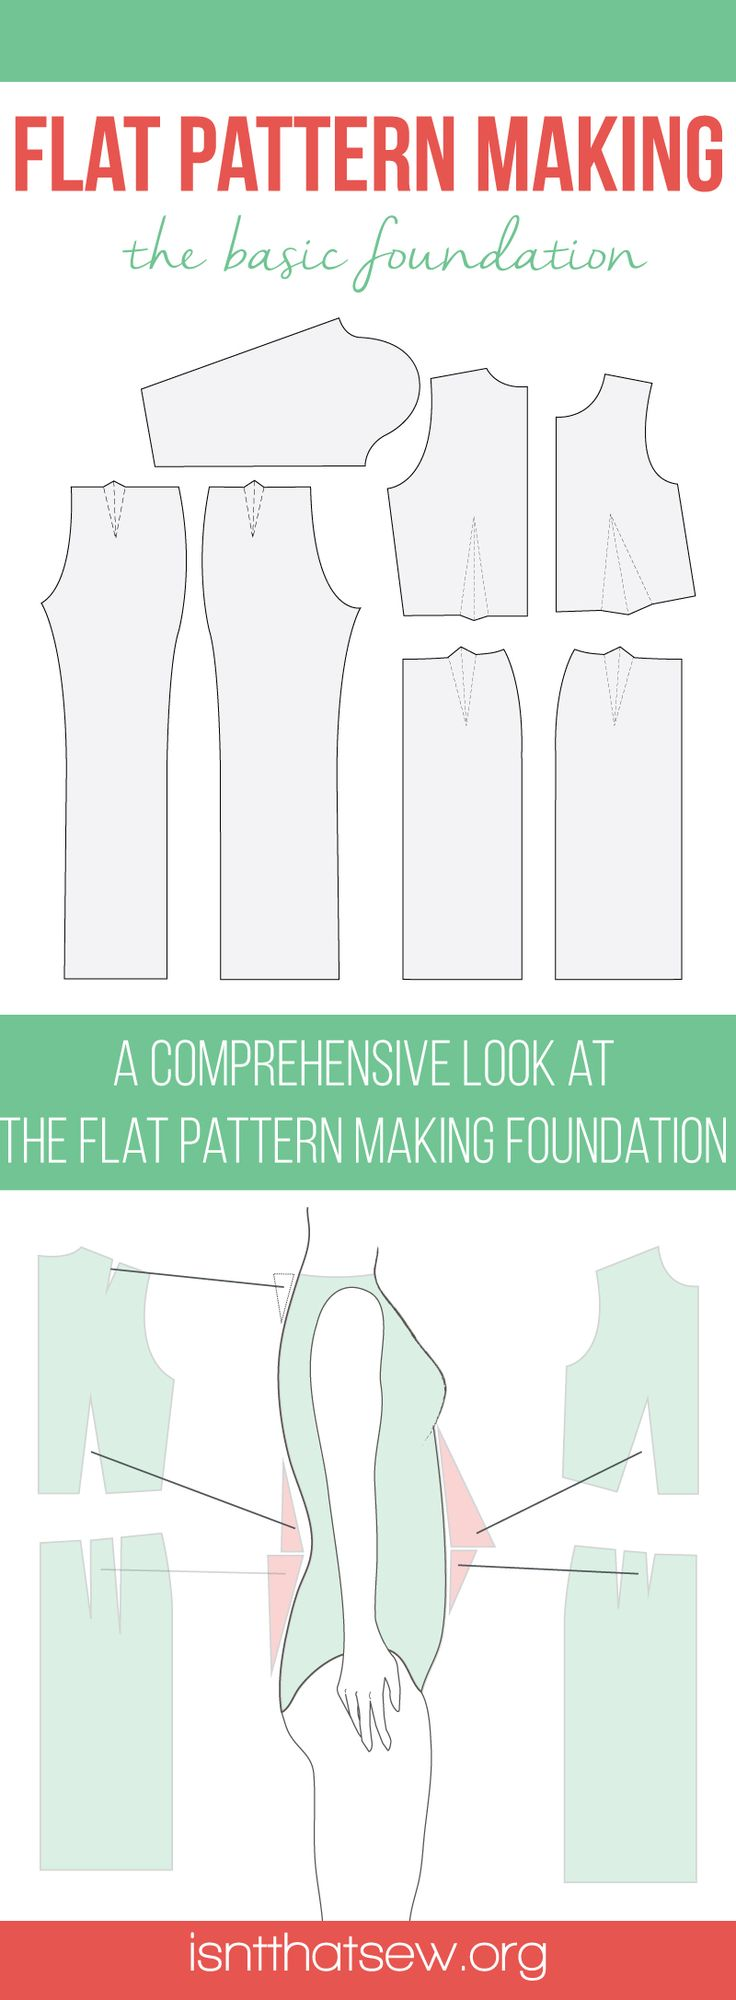 A comprehensive look at the Flat Pattern Making Foundation and common terminolgy